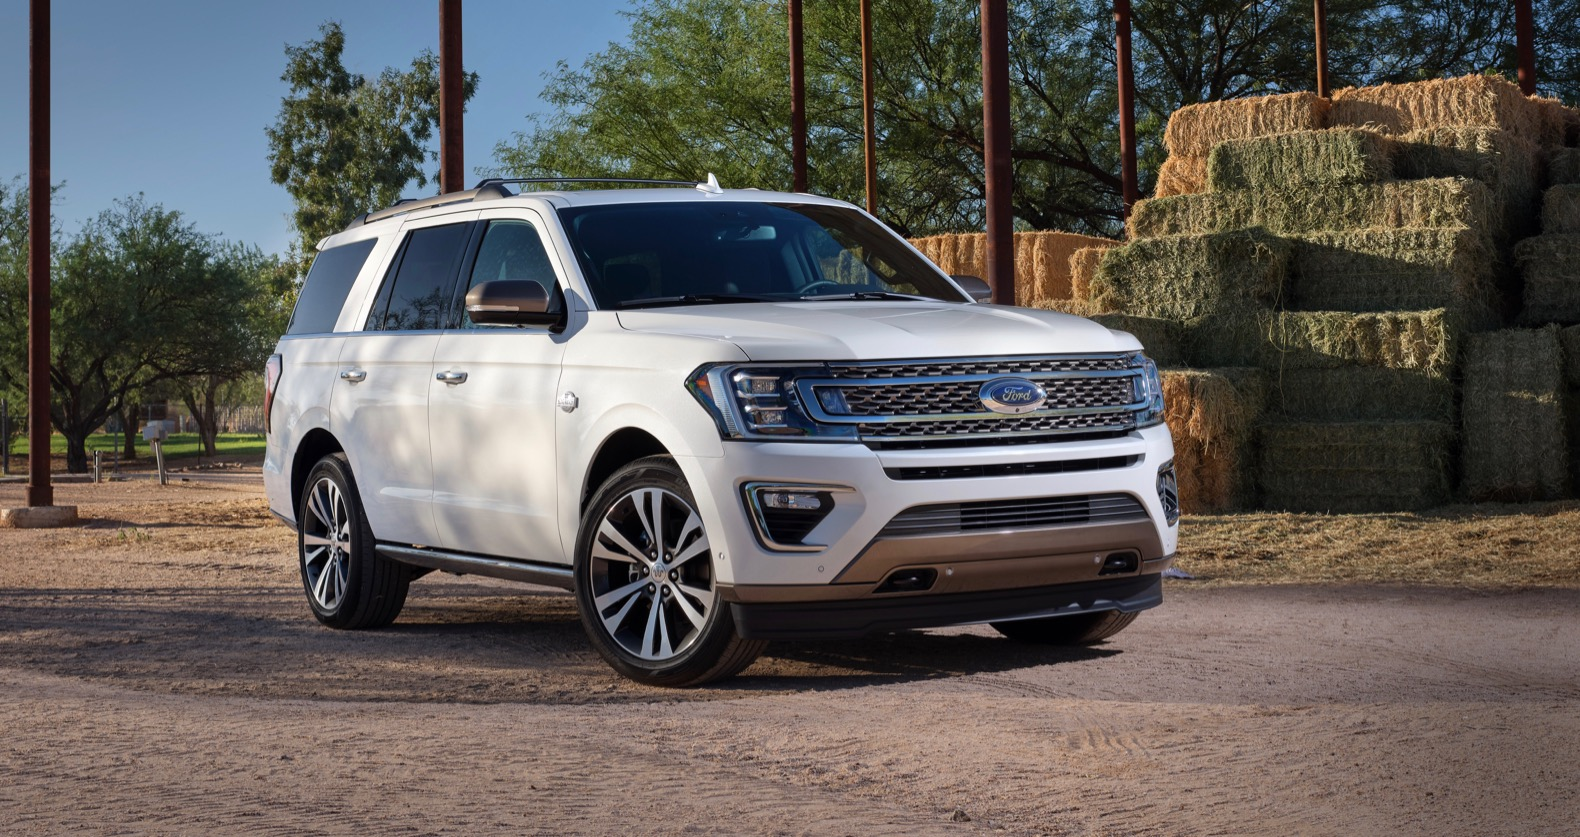 2020 Ford Expedition King Ranch Is Western-inspired